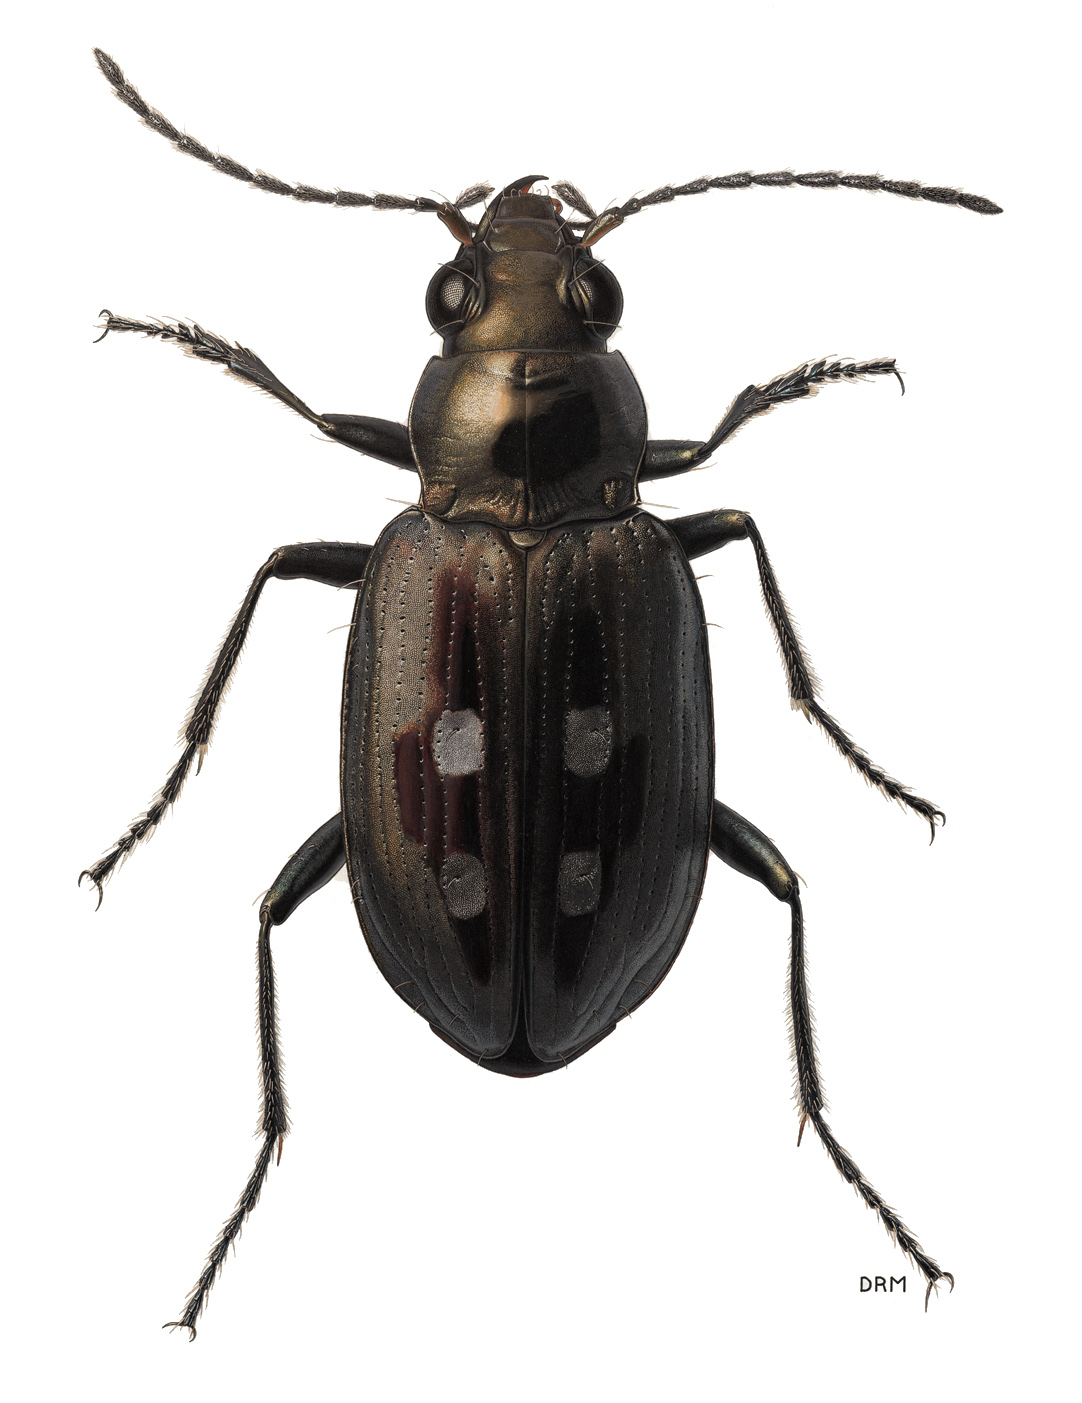 drawing beetles the subulate palpomere